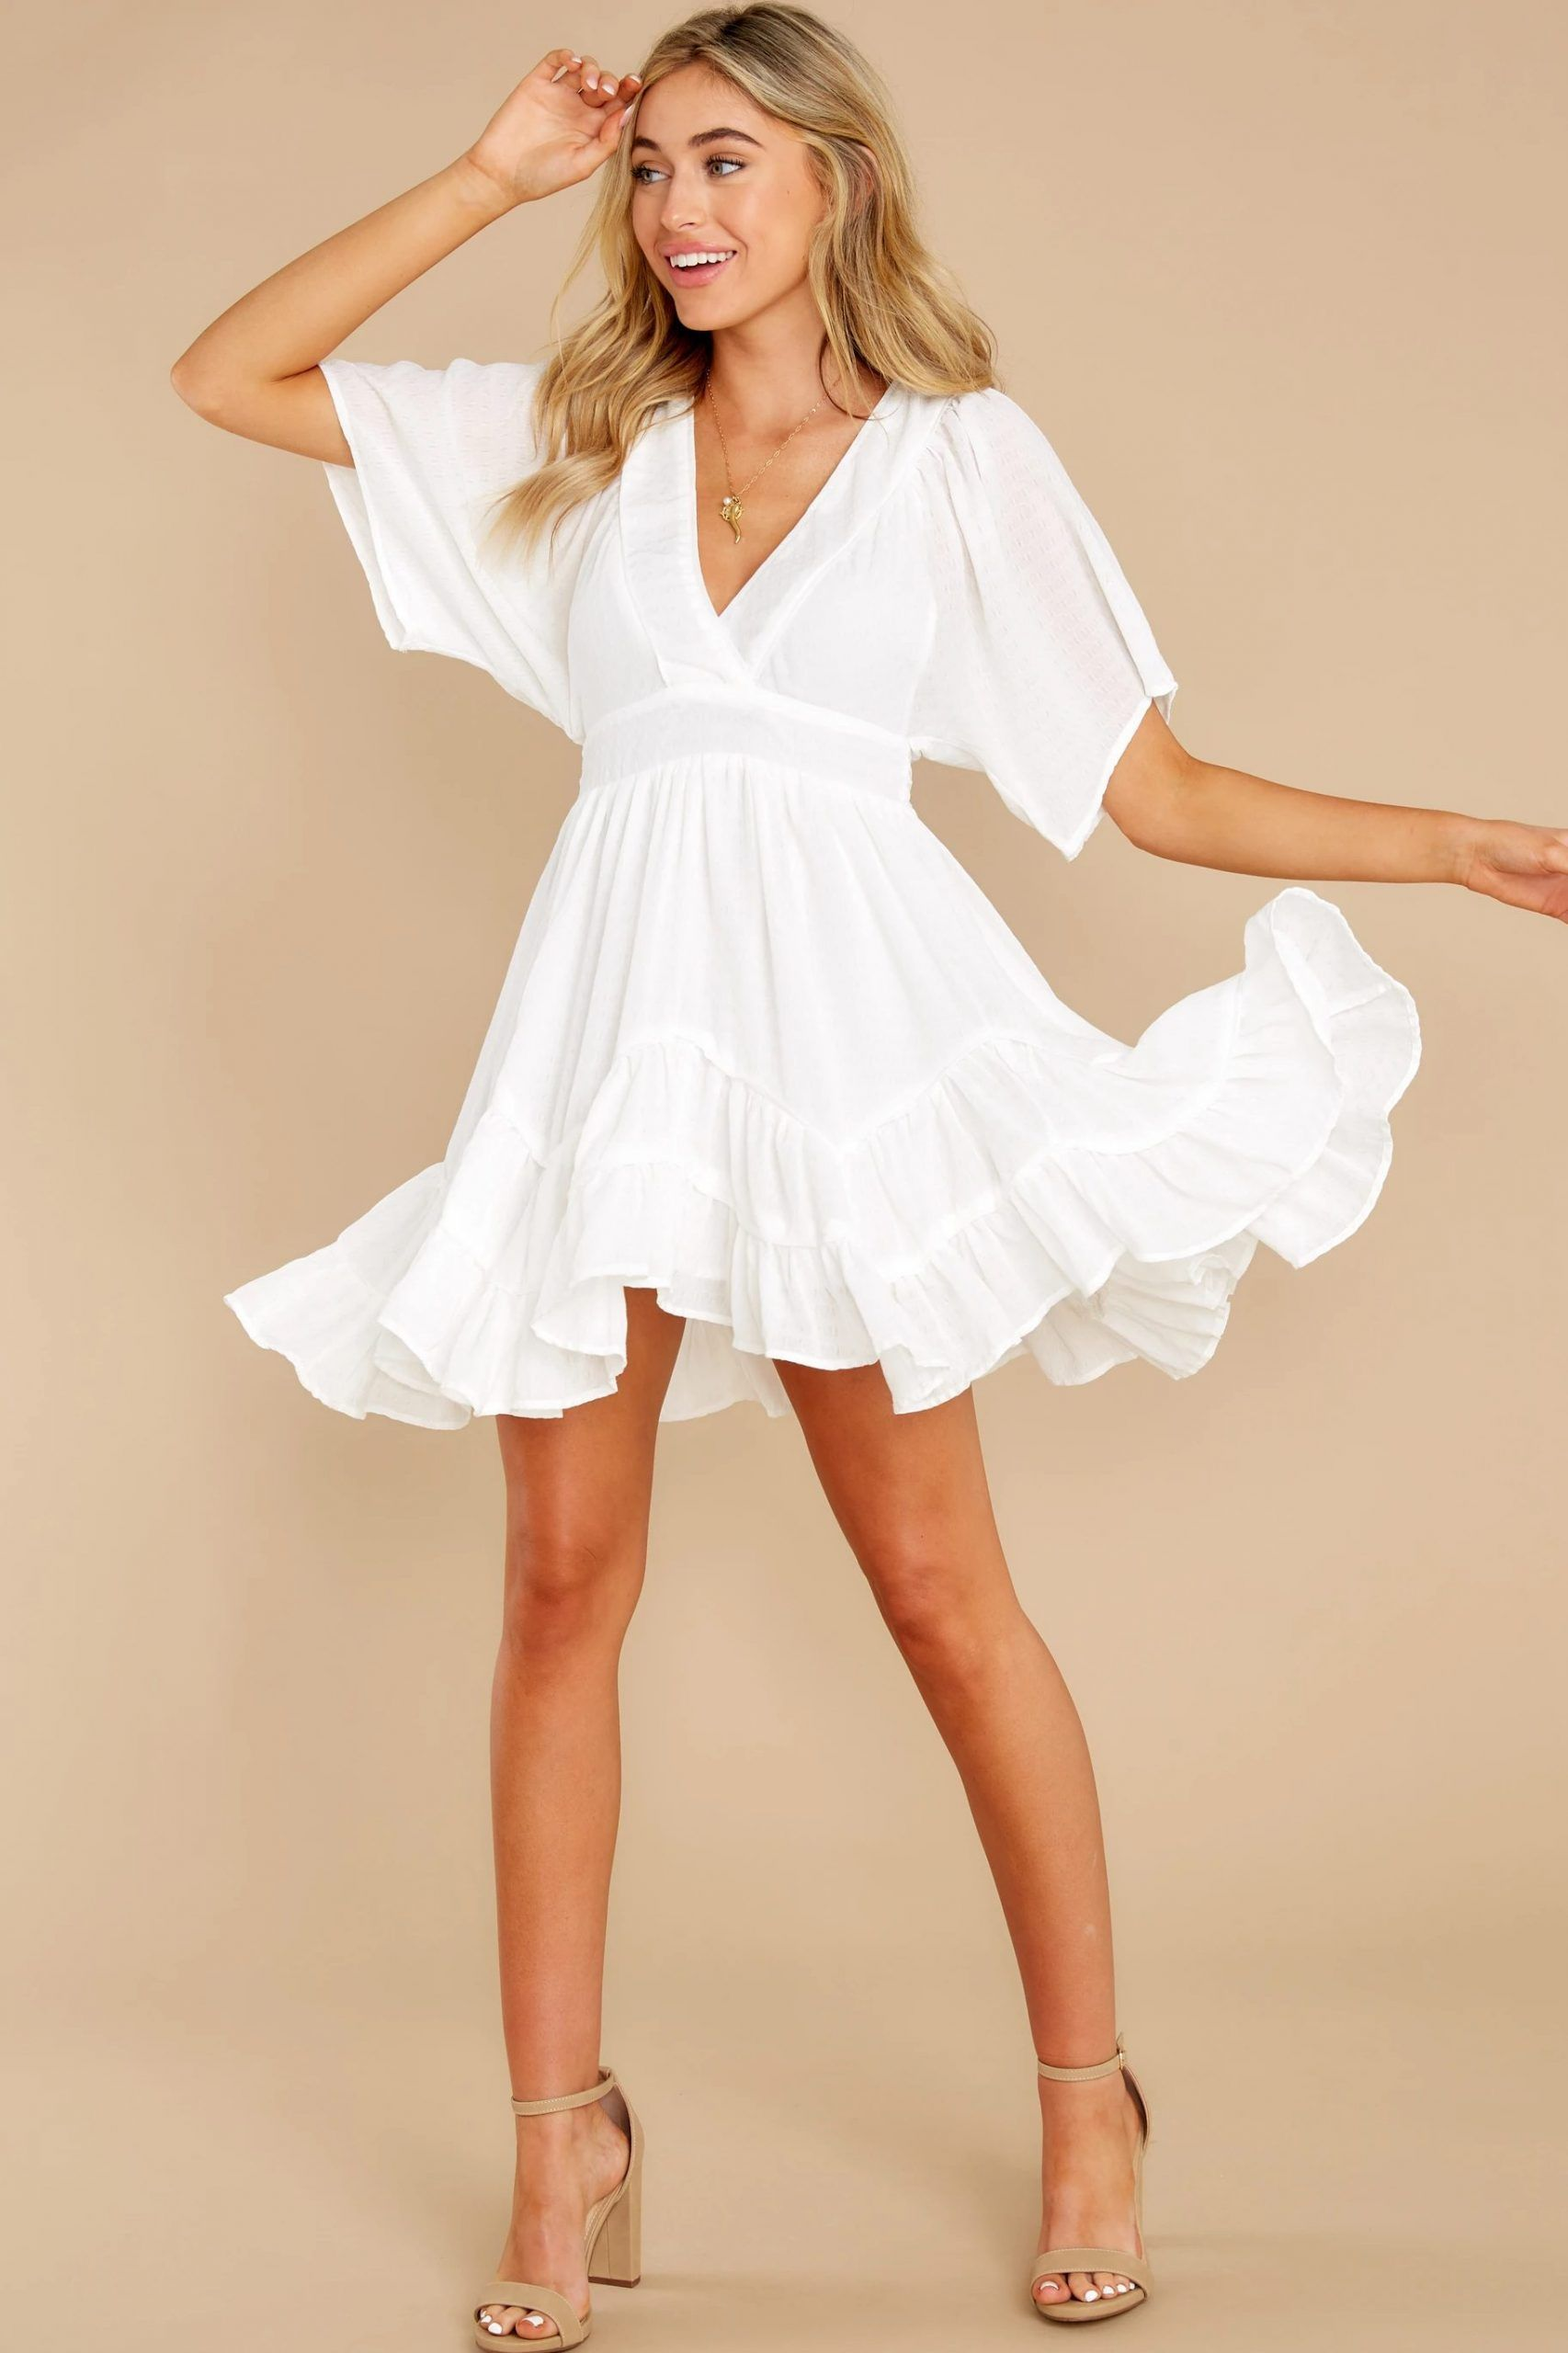 40 Gorgeous White Graduation Dresses To Get Your Diploma In Style In 2021 White Short Dress White Dresses Graduation Red Dress Boutique [ 2560 x 1706 Pixel ]